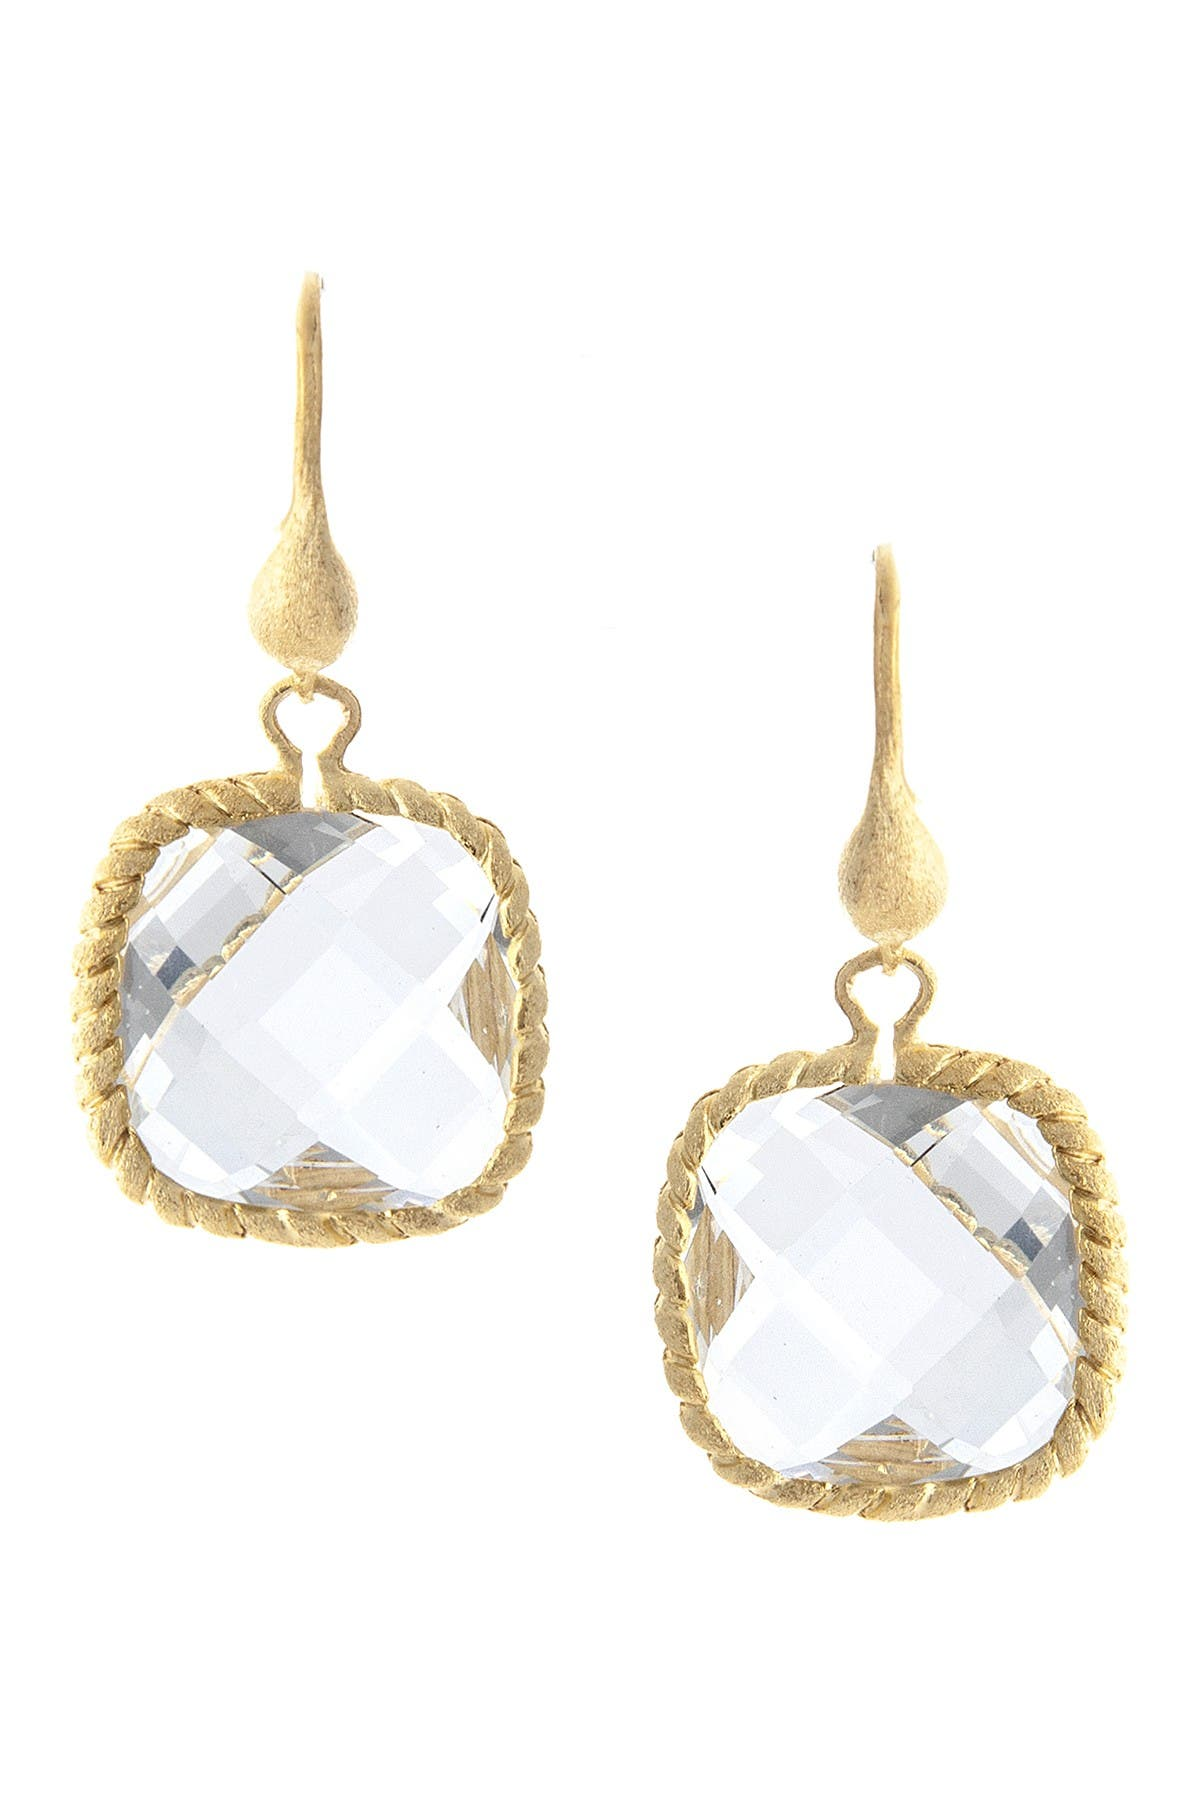 Image of Rivka Friedman 18K Gold Clad Faceted Rock Crystal Satin Twisted Cable Dangle Earrings